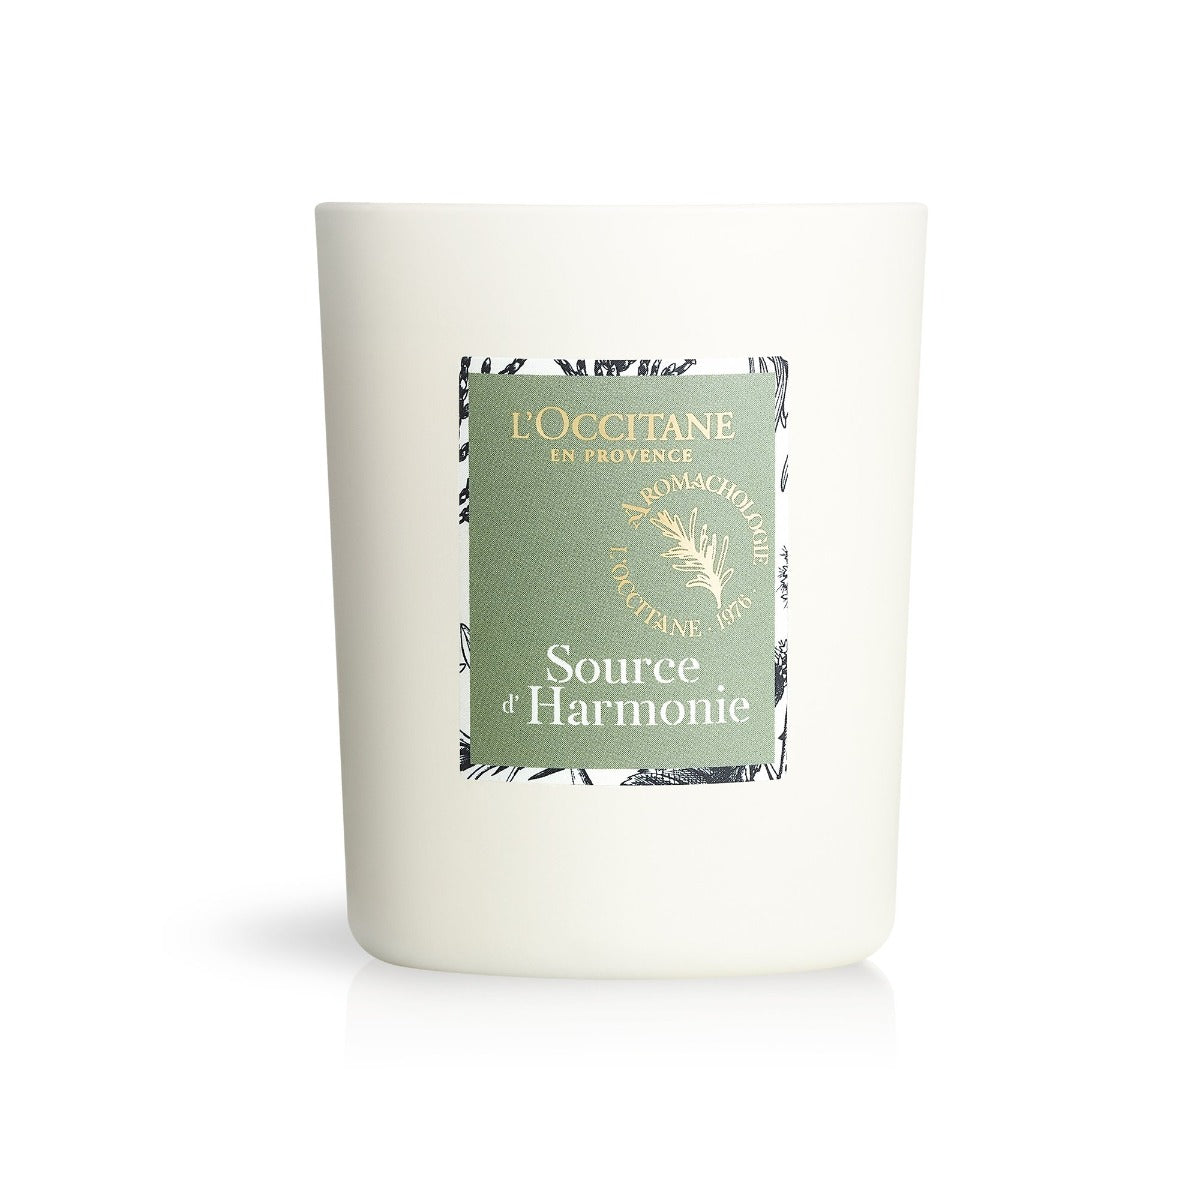 L'Occitane Source D'Harmonie Harmony Candle